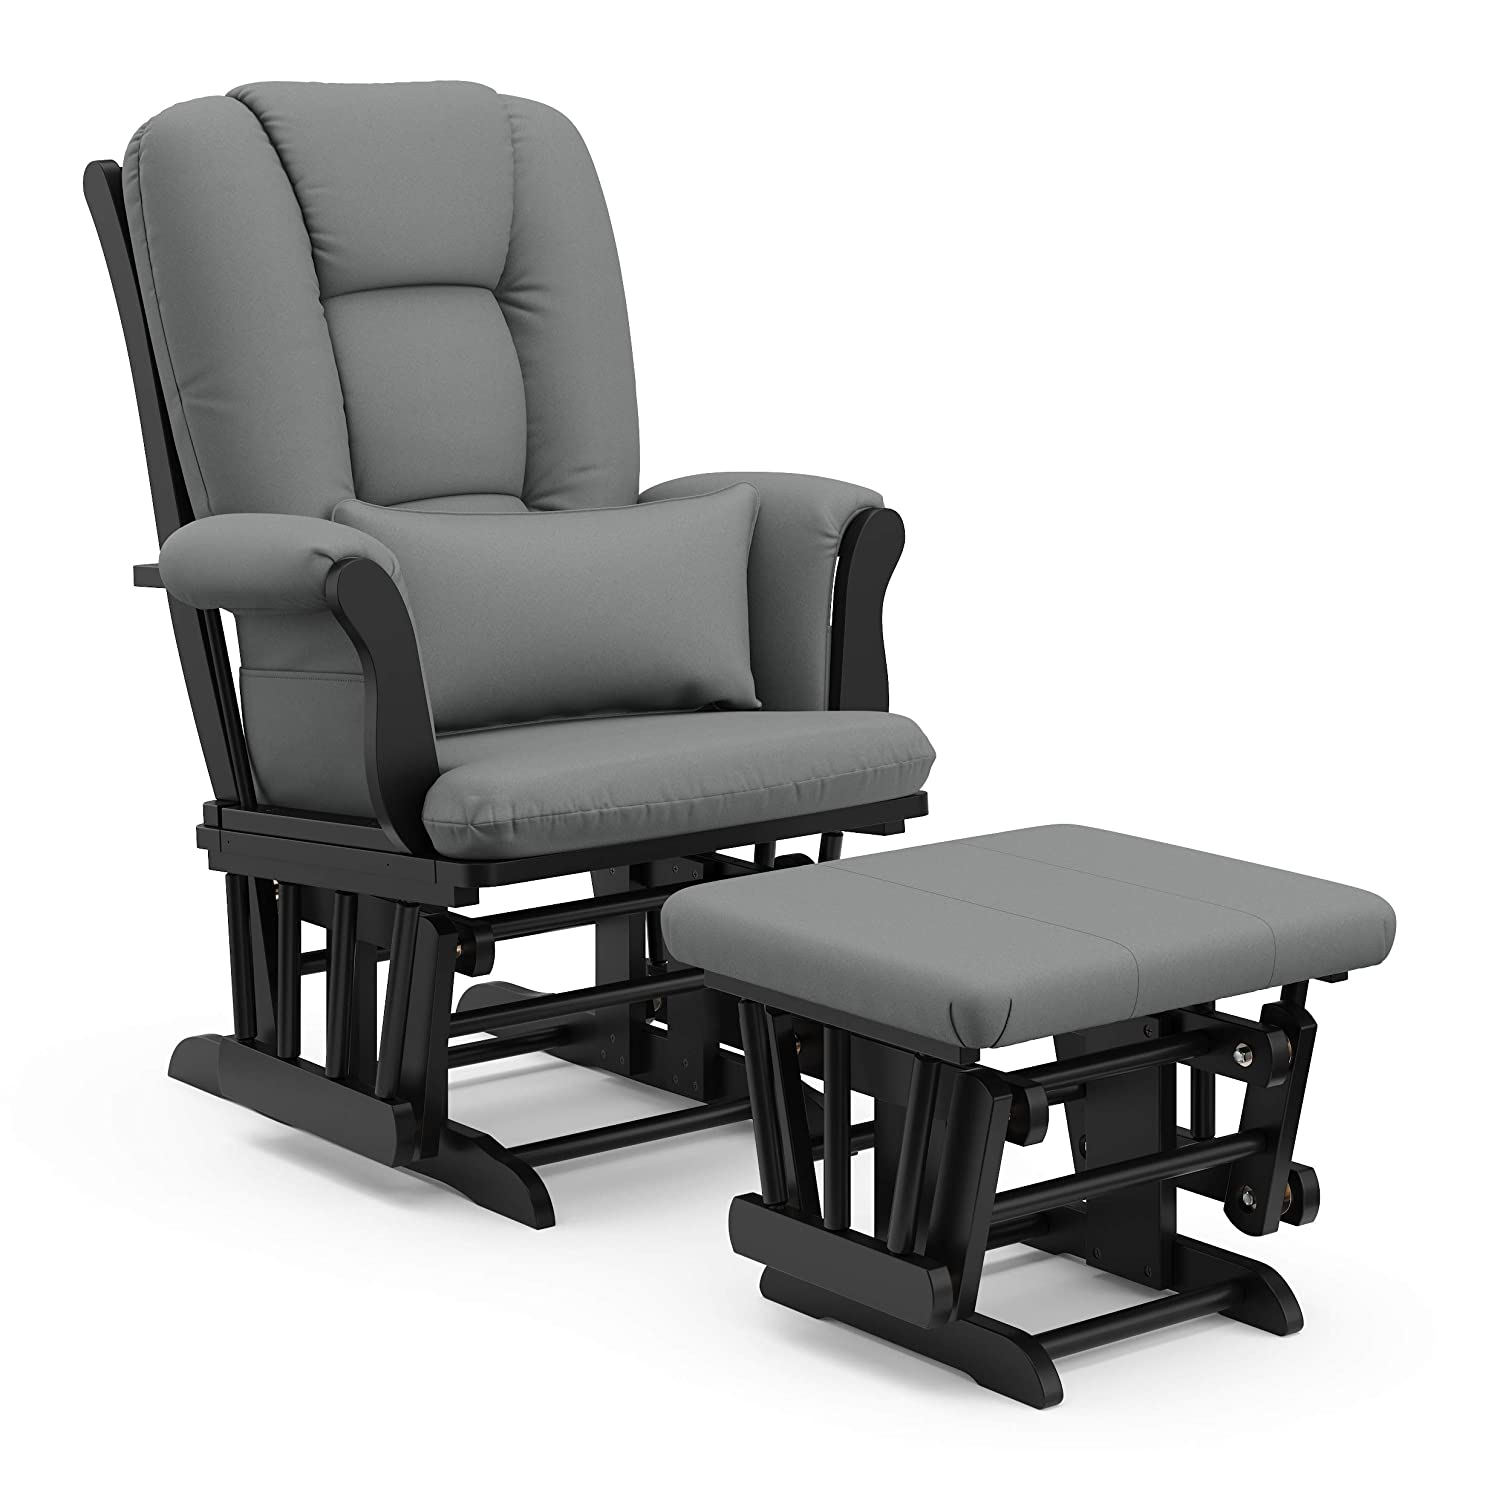 Storkcraft Tuscany Custom Glider and Ottoman with Free Lumbar Pillow, Black/Grey, Cleanable Upholstered Comfort Rocking Nursery Chair with Ottoman